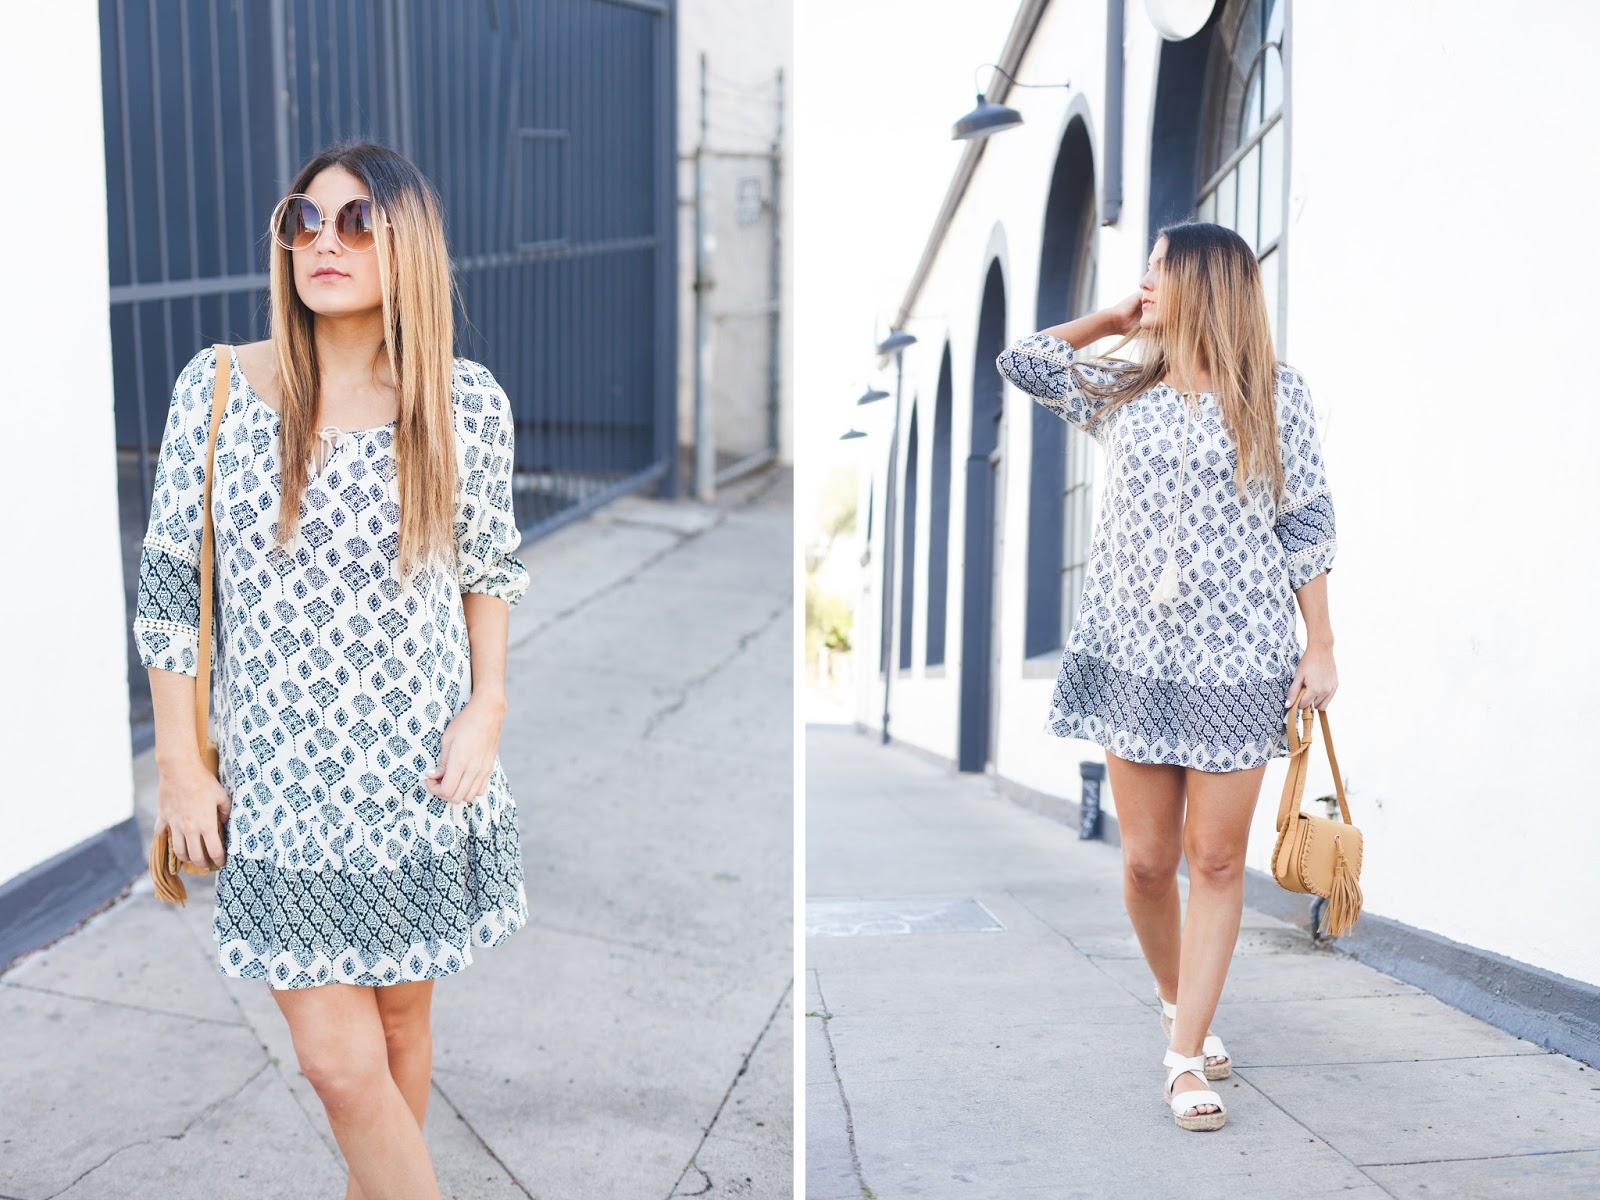 Seaside Boutique Printed Dress - My Cup of Chic